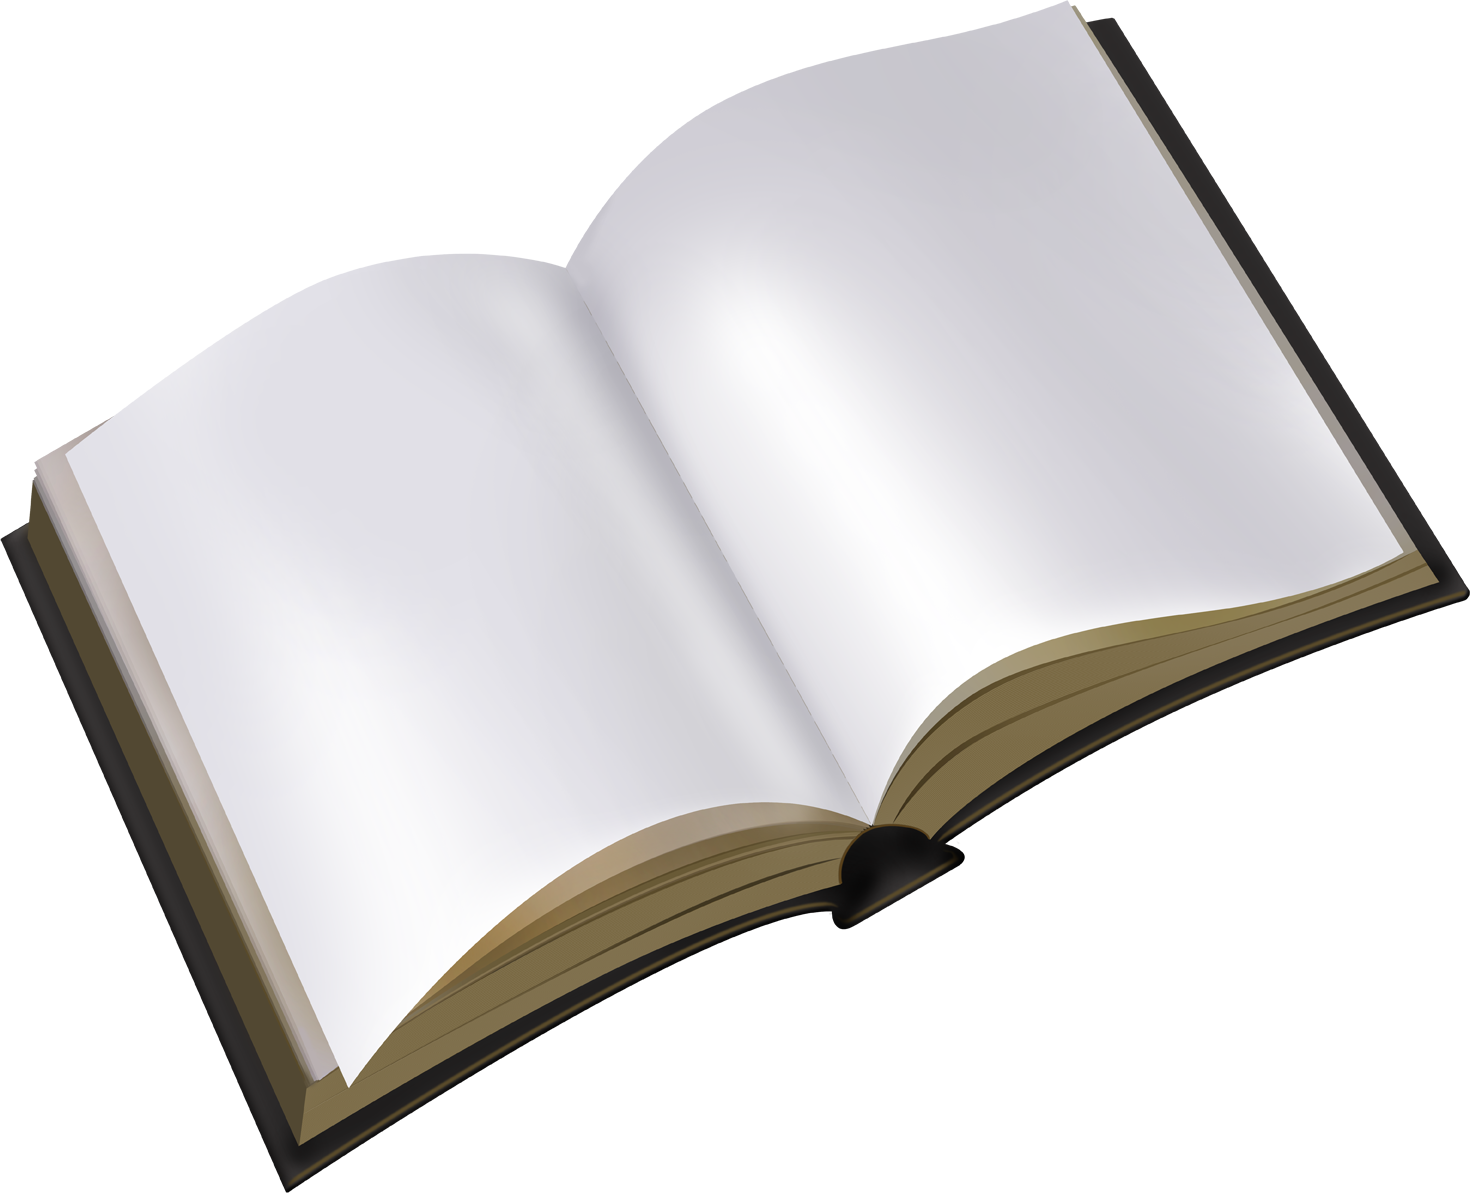 Open blank book png. Image purepng free transparent